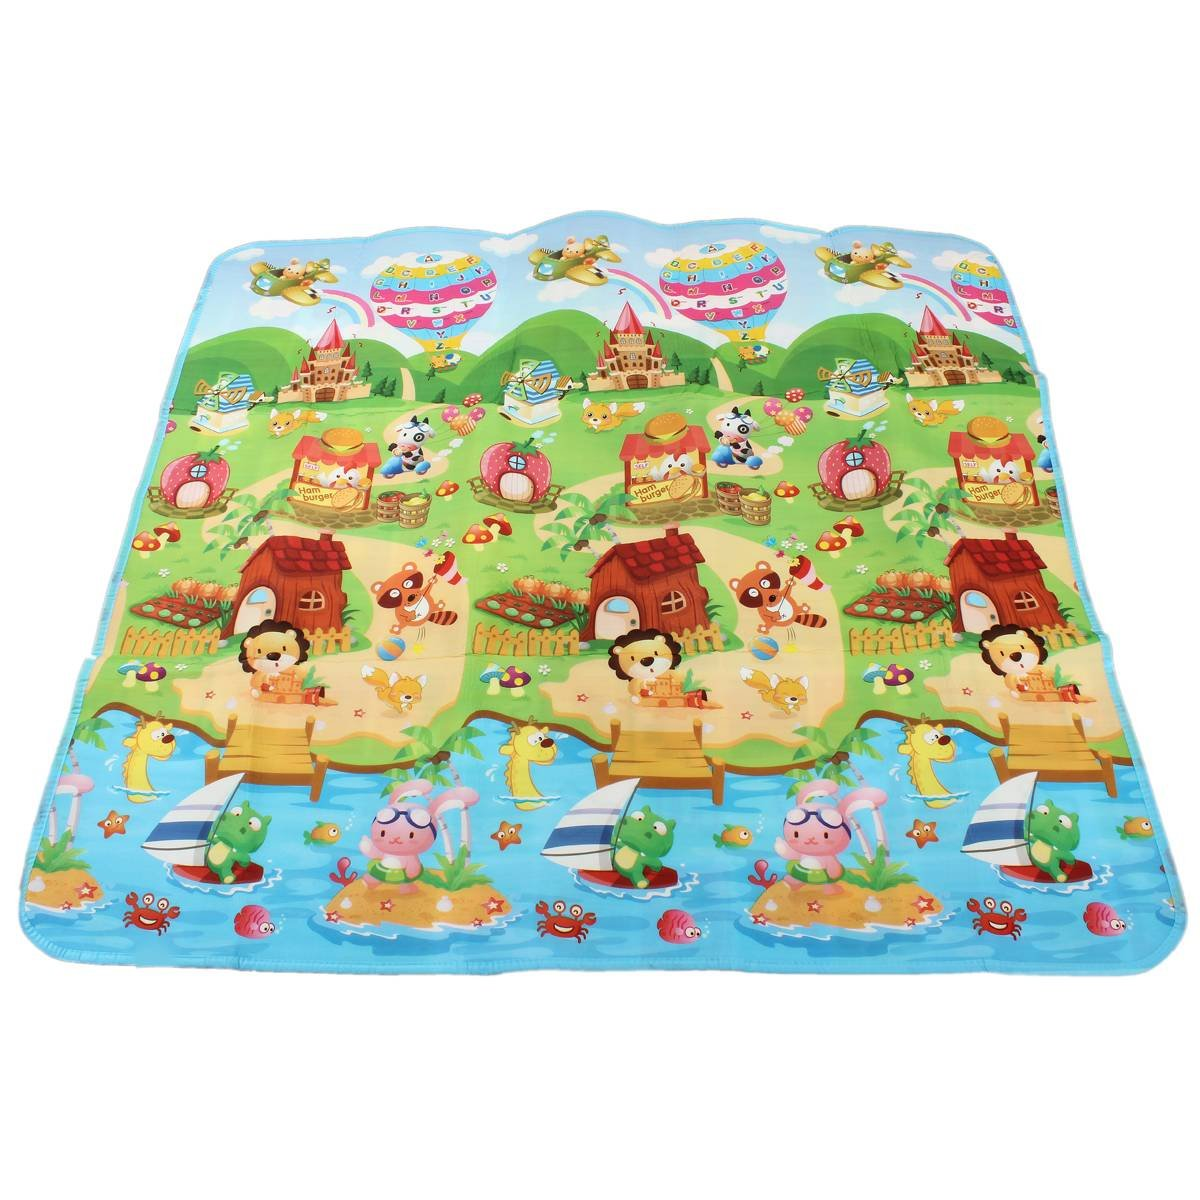 Baby Crawl Mat Kids Play mat Toddler Playing Carpet Picnic Blanket